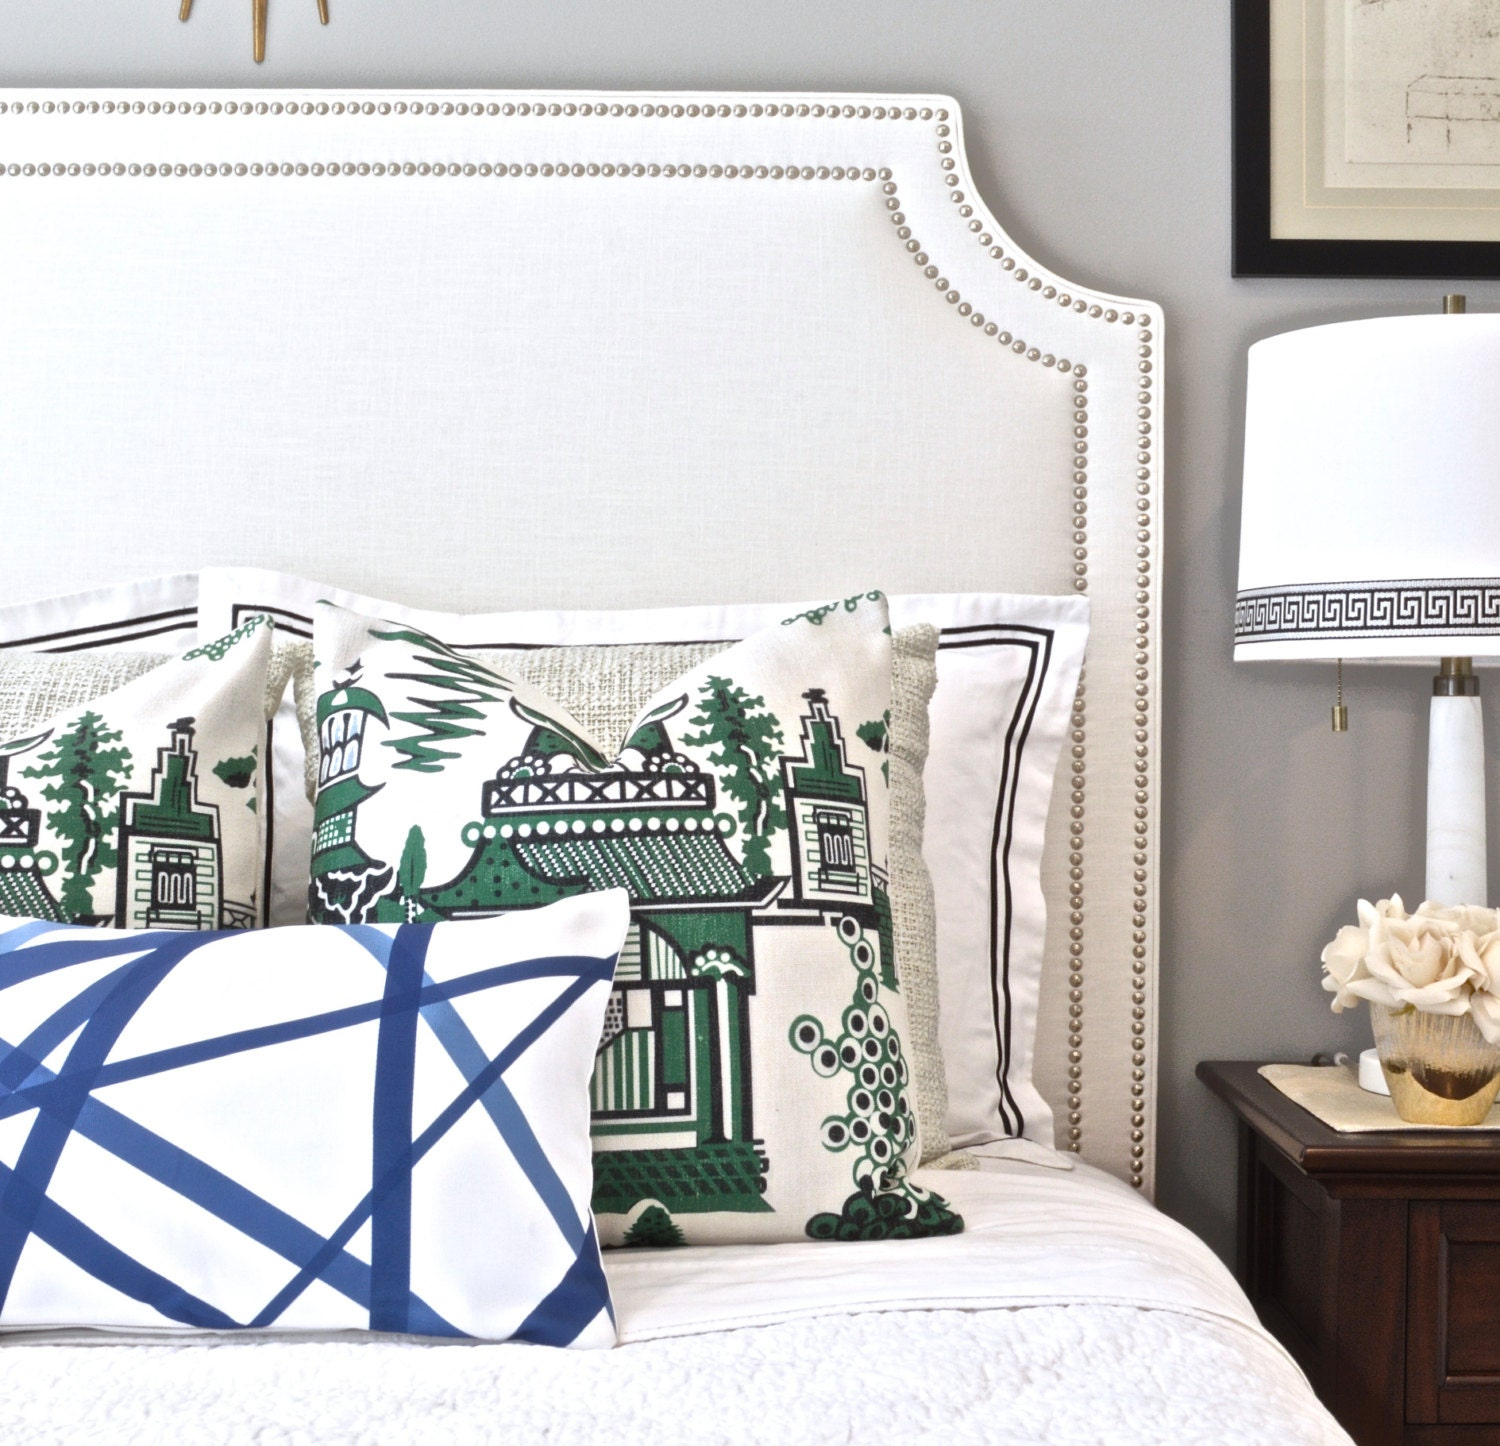 headboard two ideas way drawers simple bedroom bedding on upholstered white a modern wooden with wall adorn trim to nightstand pictures and nailhead patterned fabric set